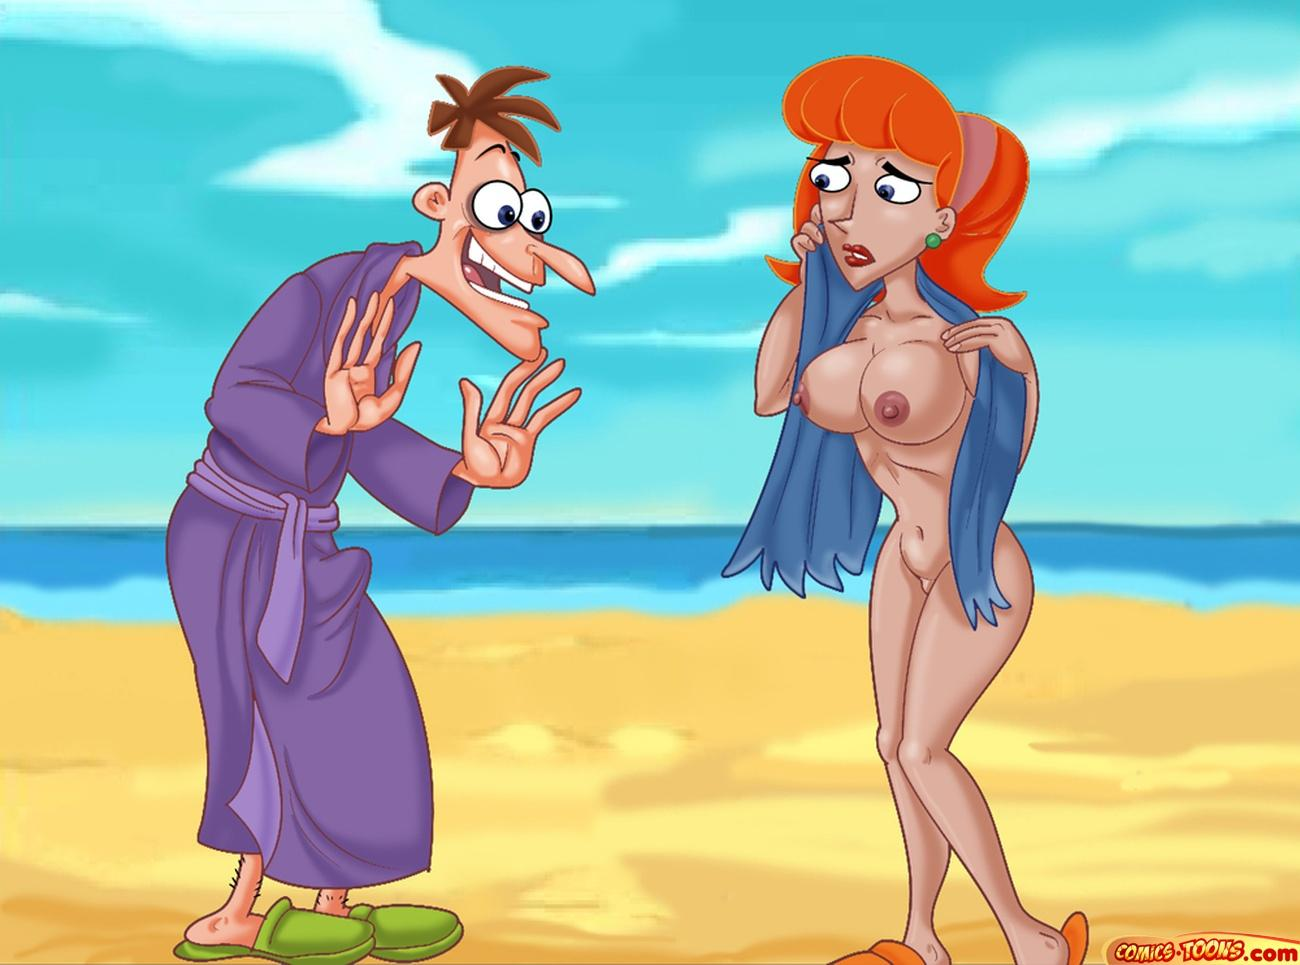 phineas nude linda ferb and Don't starve together wx-78